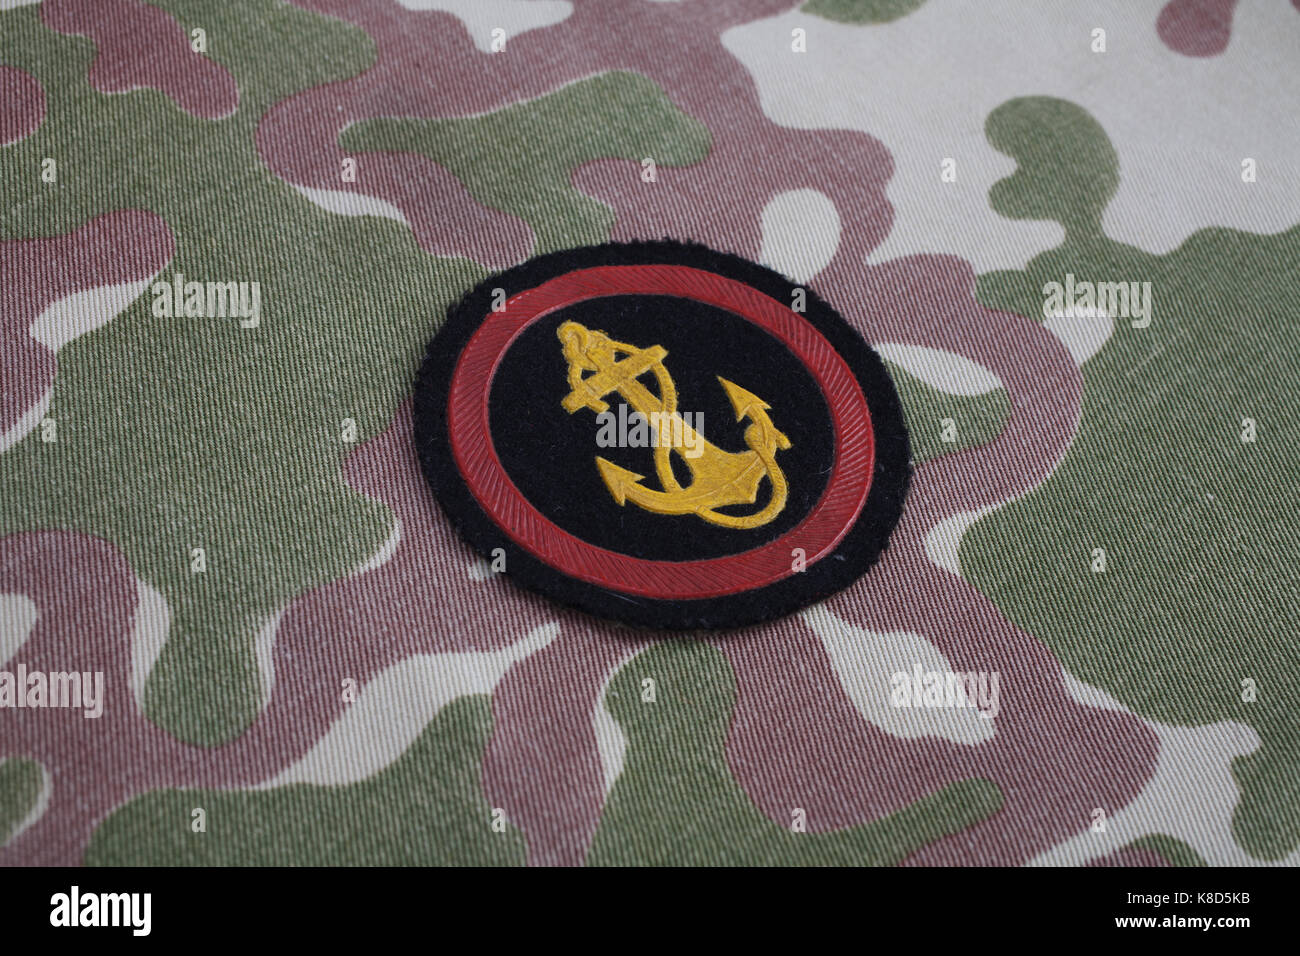 Soviet Army Marines shoulder patch on camouflage uniform - Stock Image